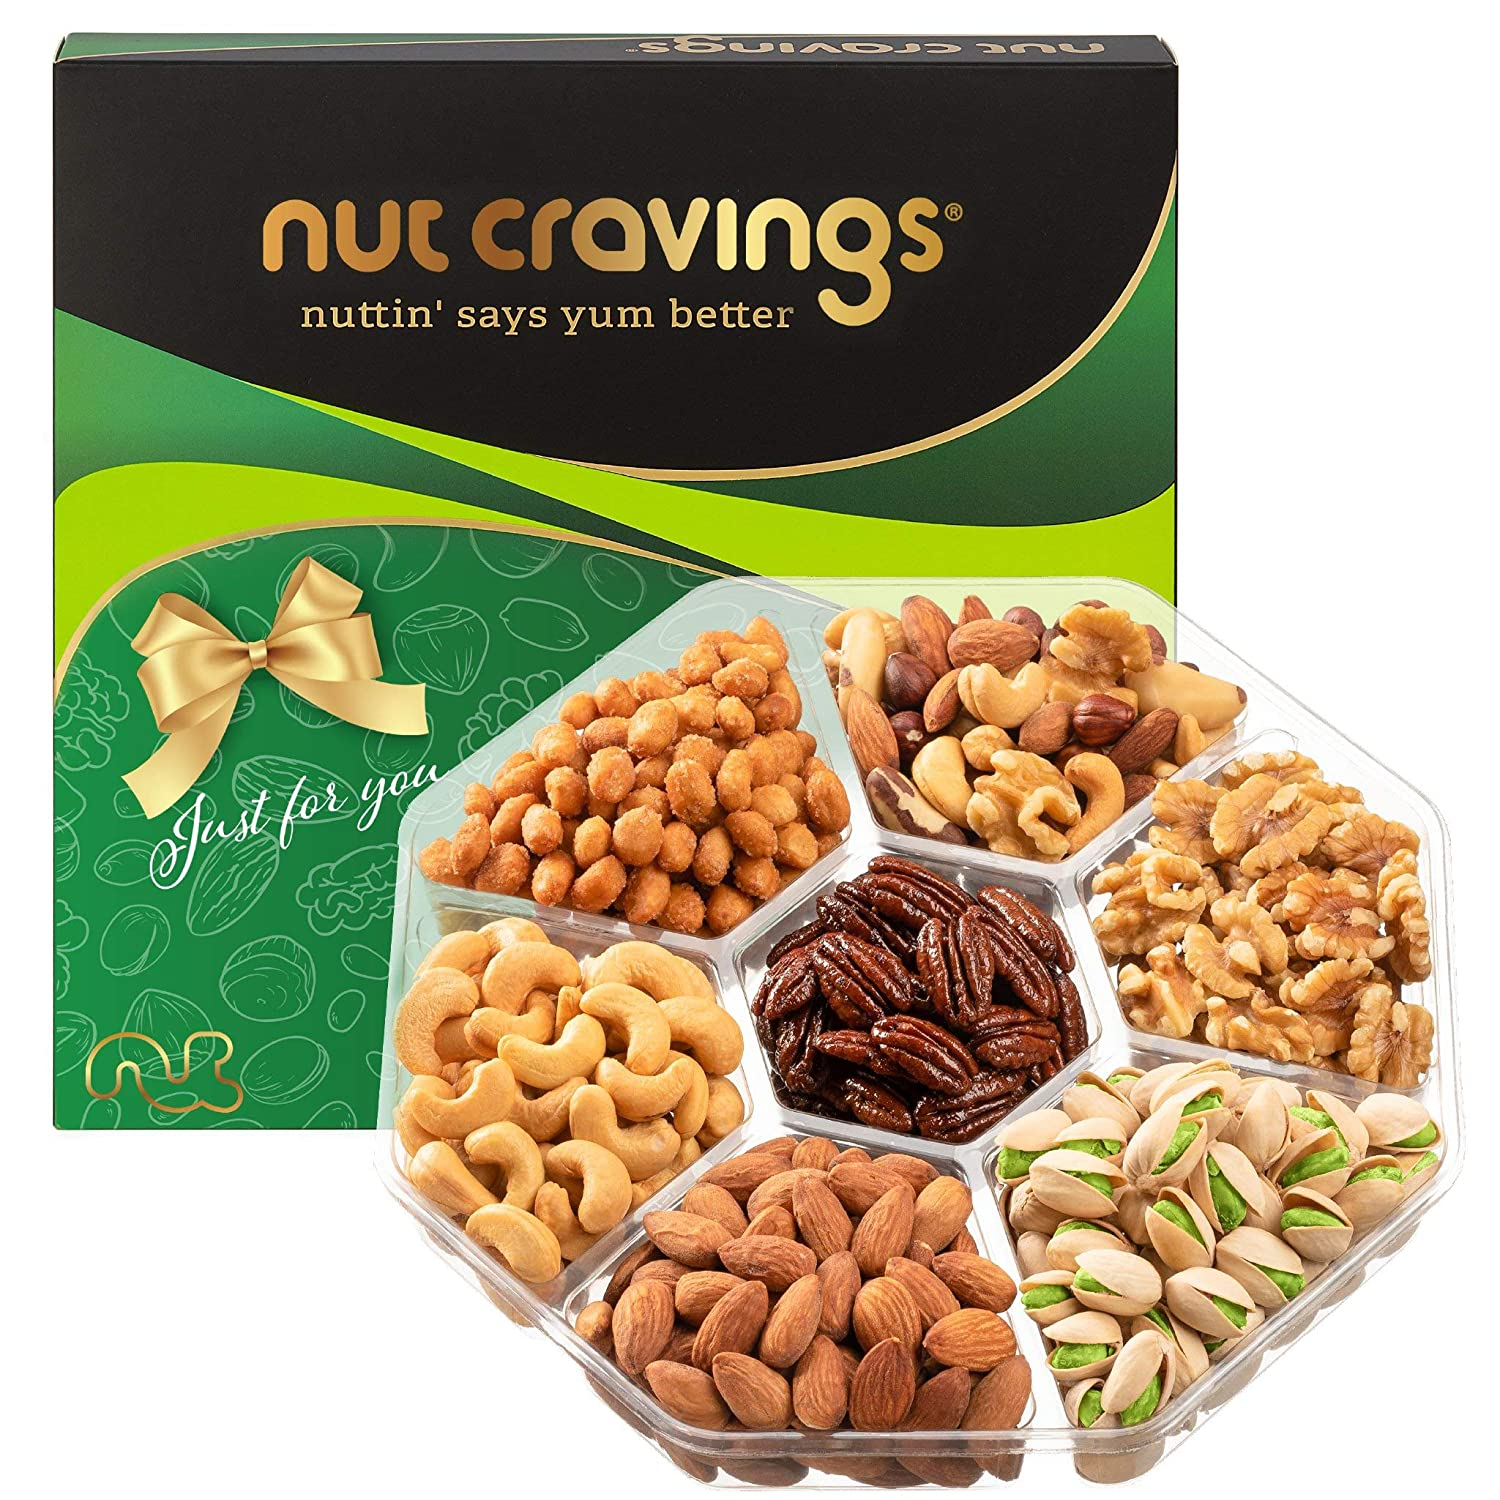 Holiday Nut Gift Basket, Green Box (Large Tray 7 Mix) - Thanksgiving, Christmas, Xmas Food Arrangement Platter, Variety Care Package, Birthday Party, Healthy Kosher Snack Tray for Women, Men, Adults